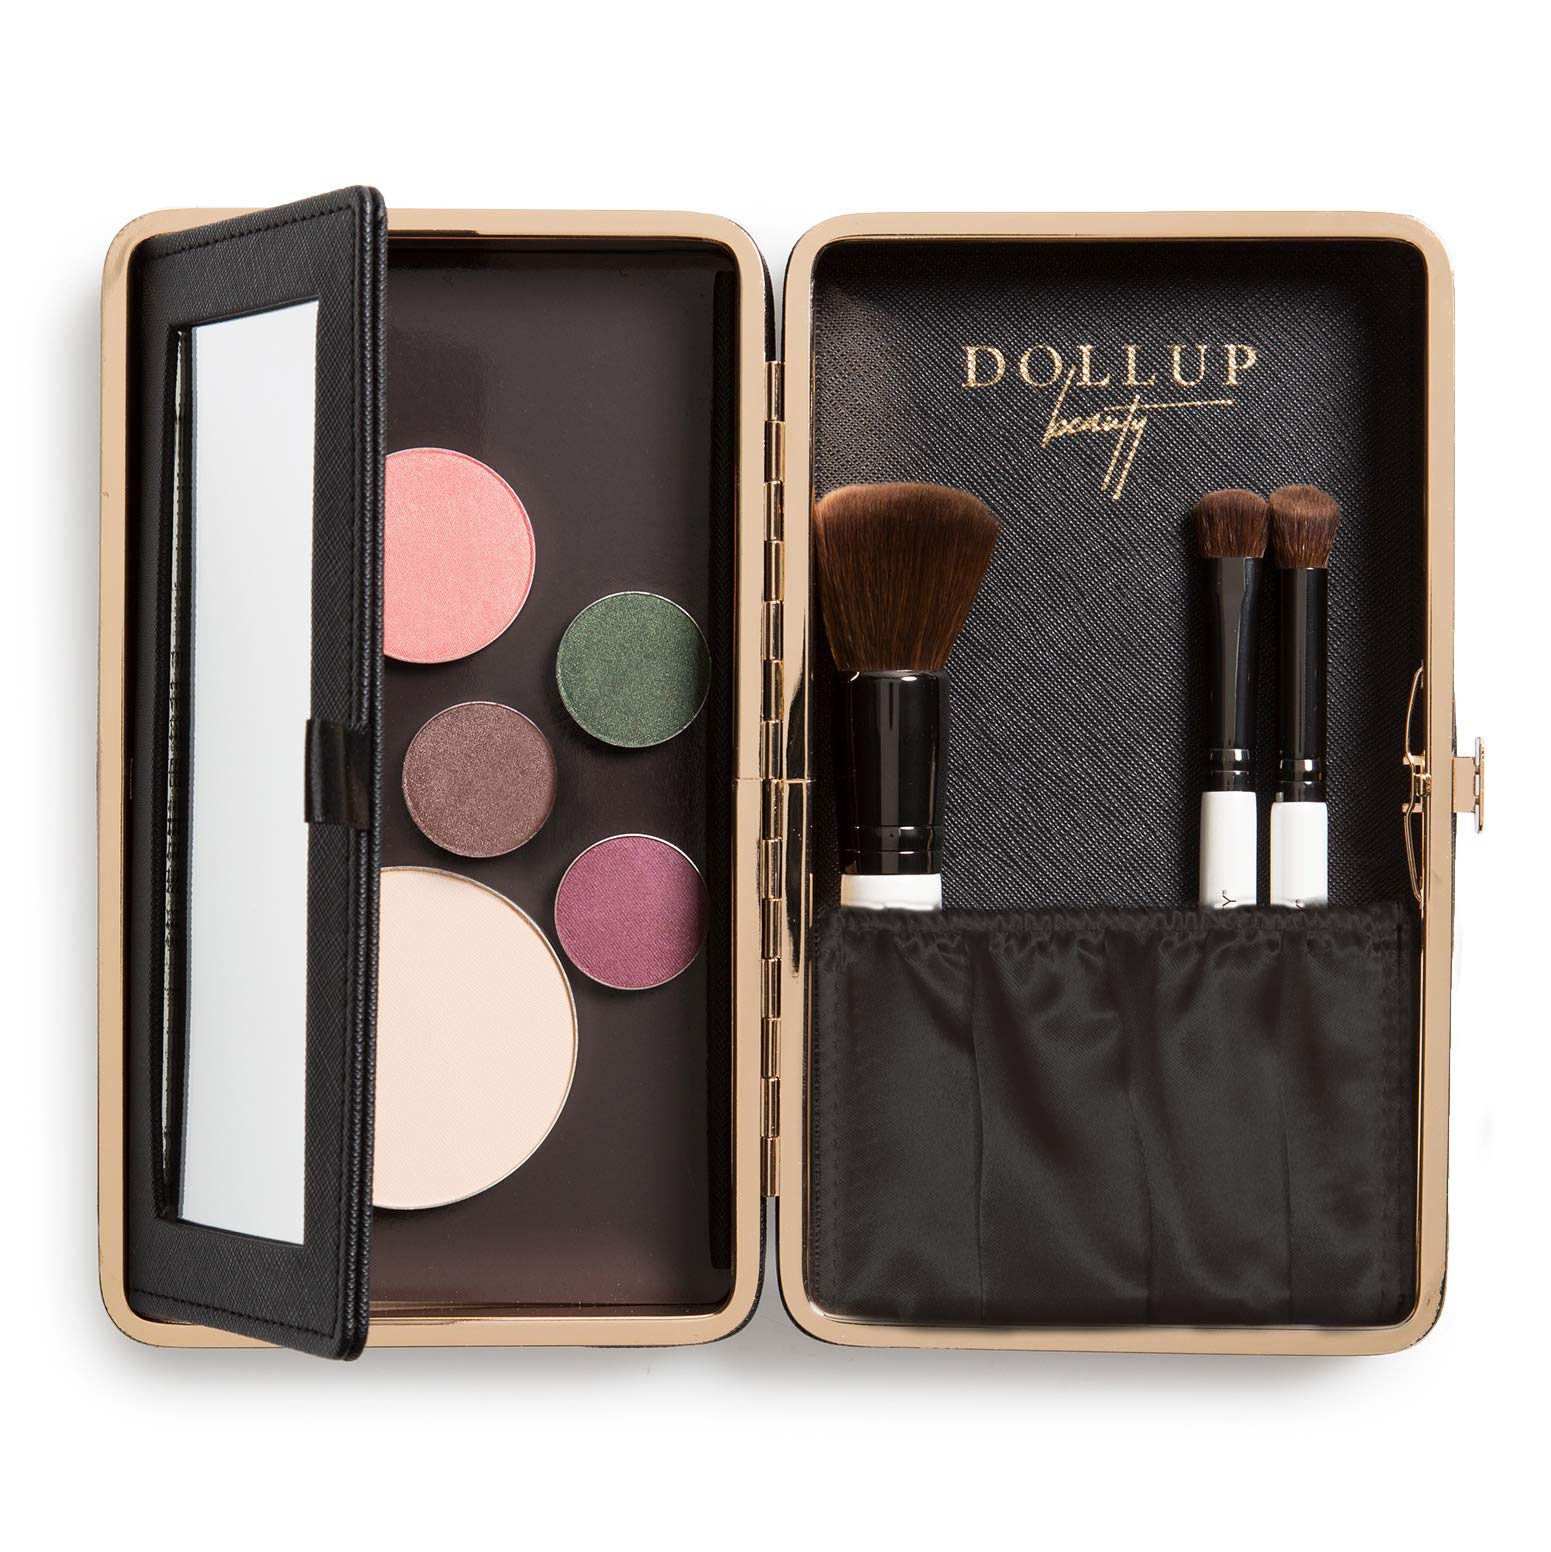 Dollup Case Makeup Organizer - Features Empty Magnetic Palette, Foldaway Vanity Mirror + Accessory Pocket. Perfect travel makeup compact. (Jetset Black).